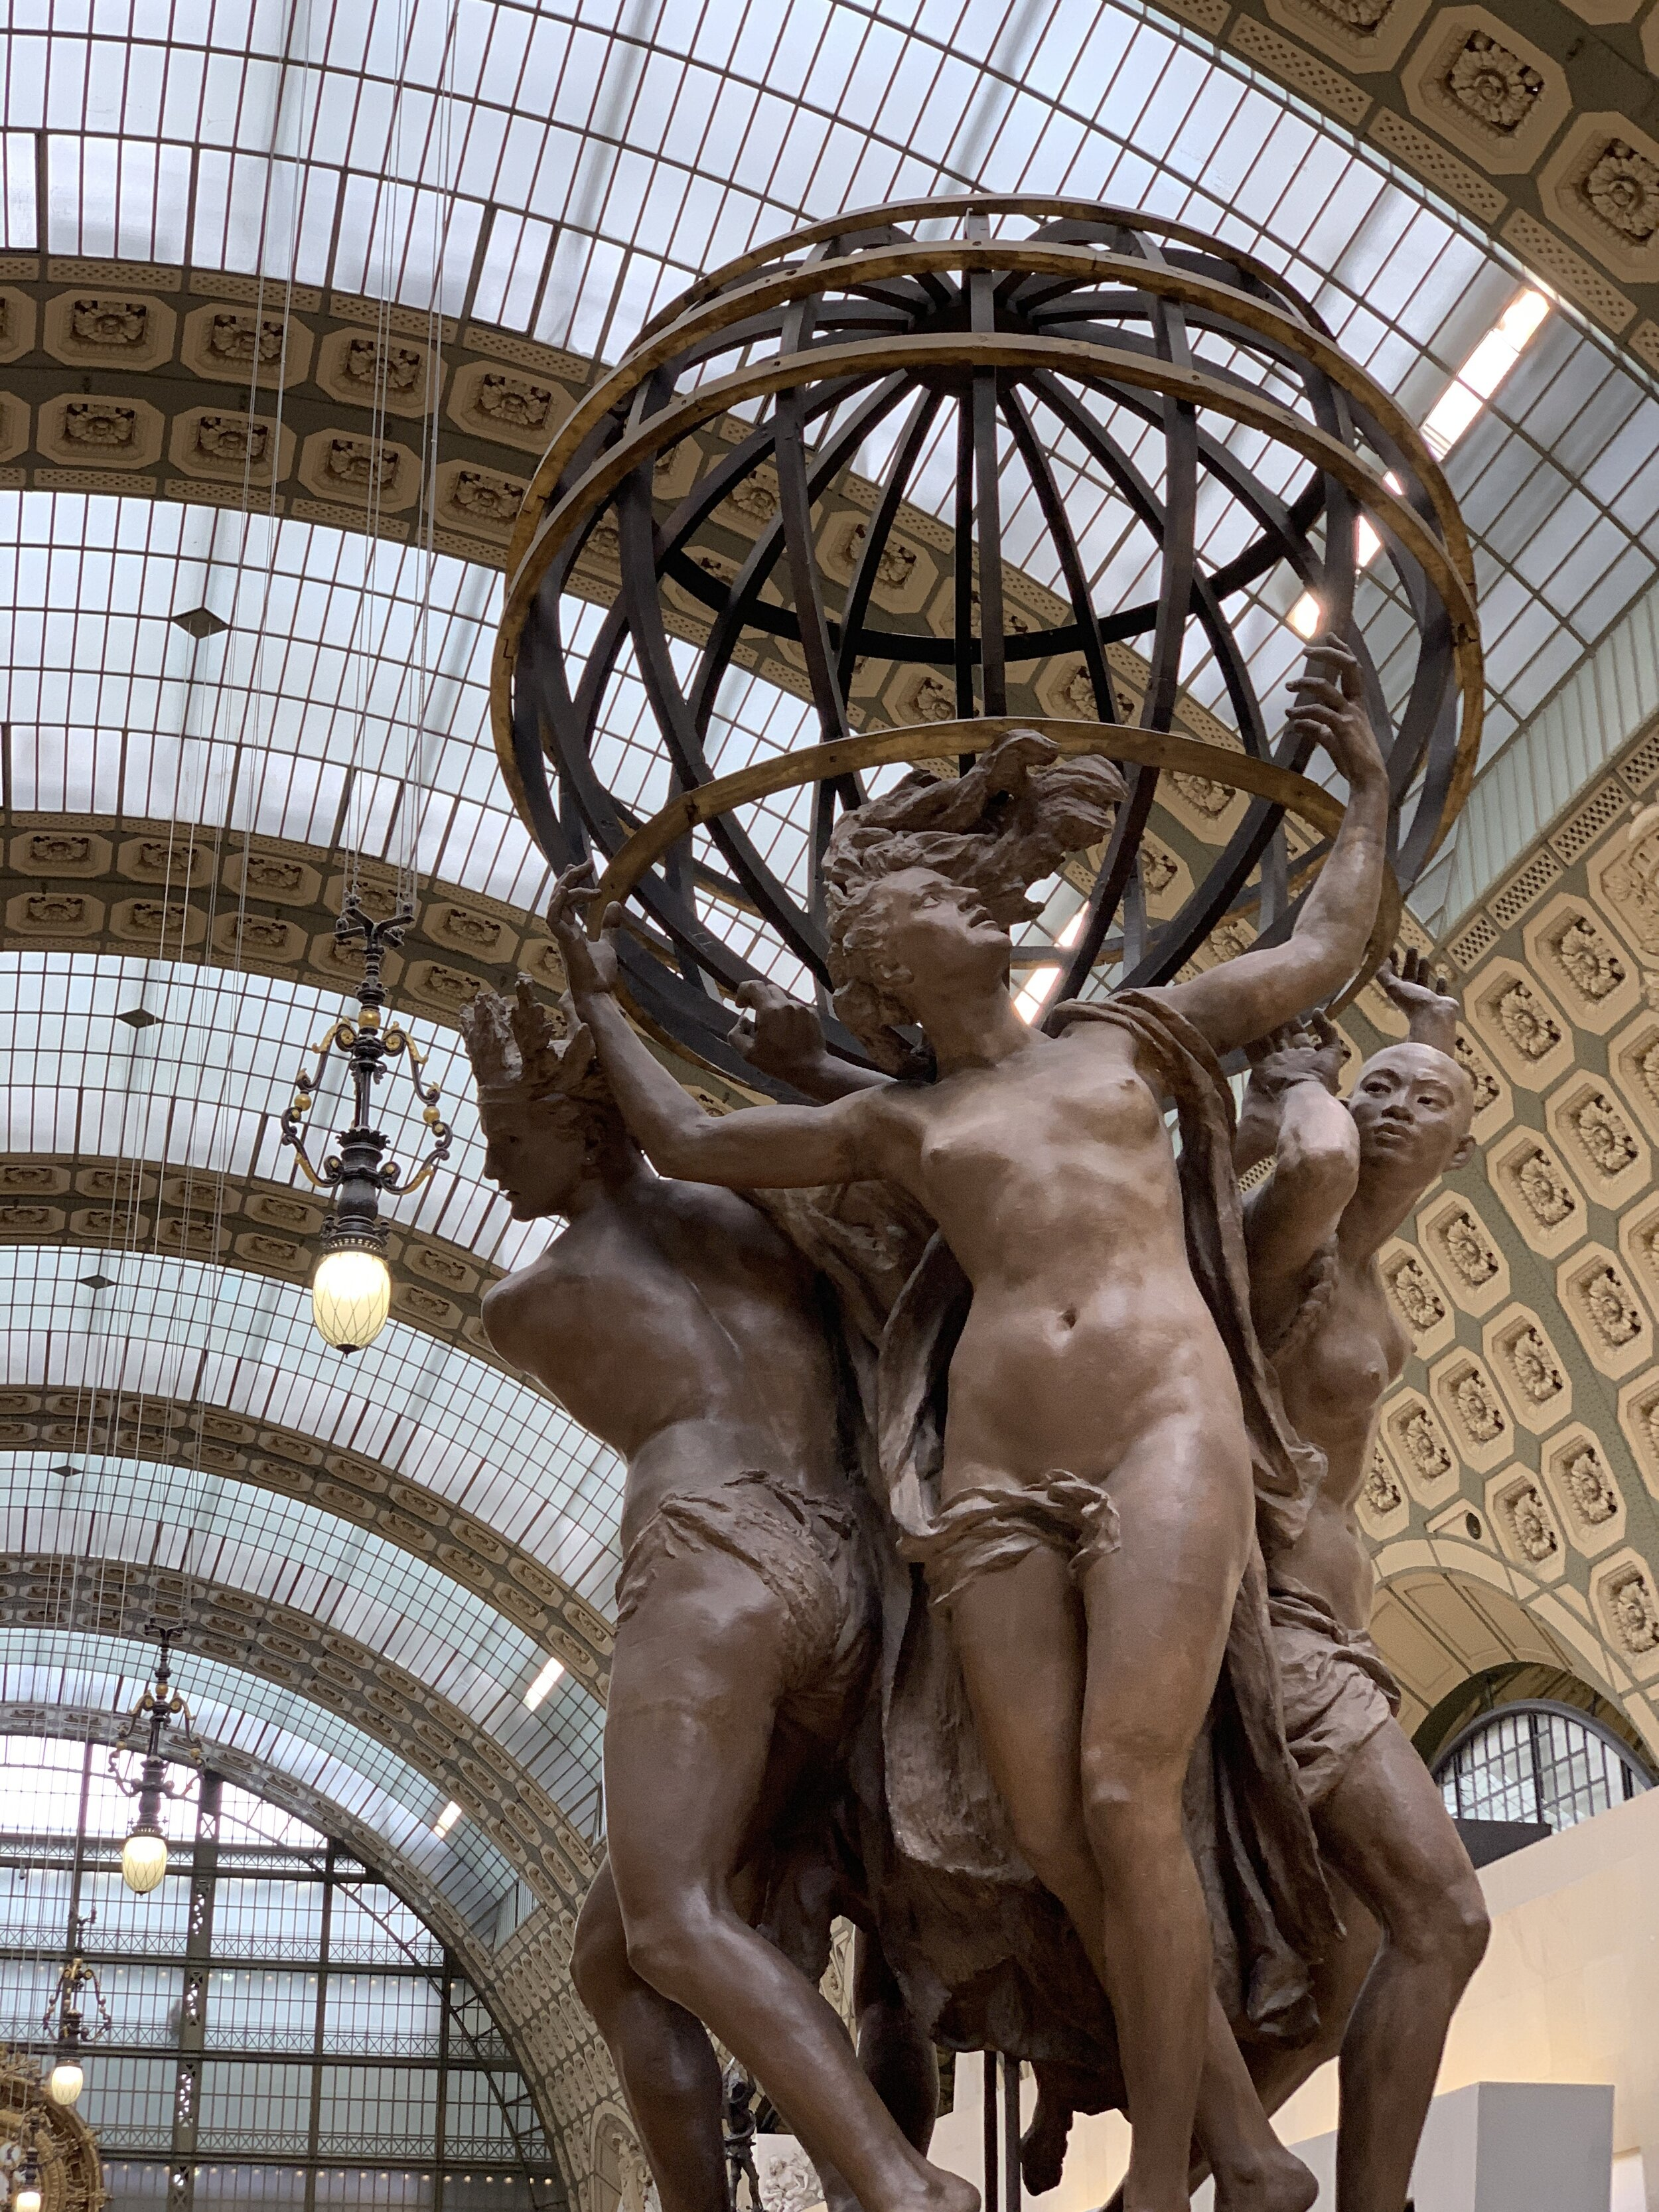 We wanted to see museums too, such as the Musee D'Orsay